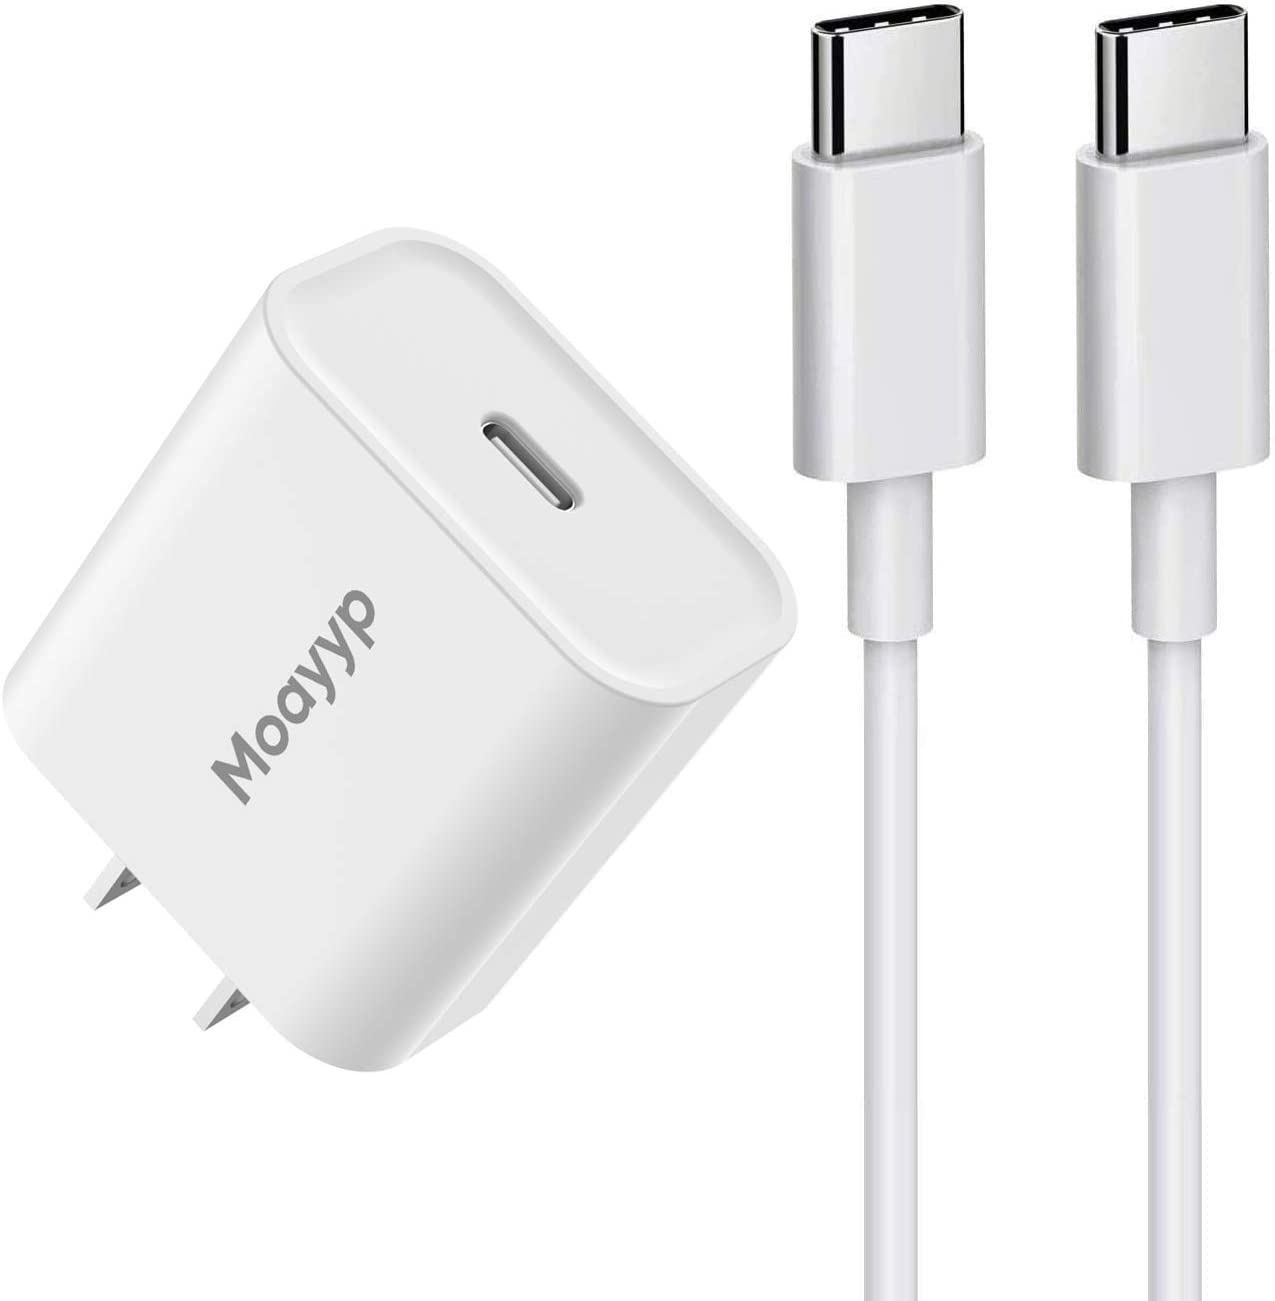 18W USB C Fast Wall Charger Compatible 2020/2018 iPad Pro 12.9 Gen 4/3, iPad Pro 11 Gen 2/1, iPad Air 4, Google Pixel 4/3 Pixel 2 XL Pixel 3A XL 2XL 3XL 4XL, with 3ft USB C to C Charging Cable